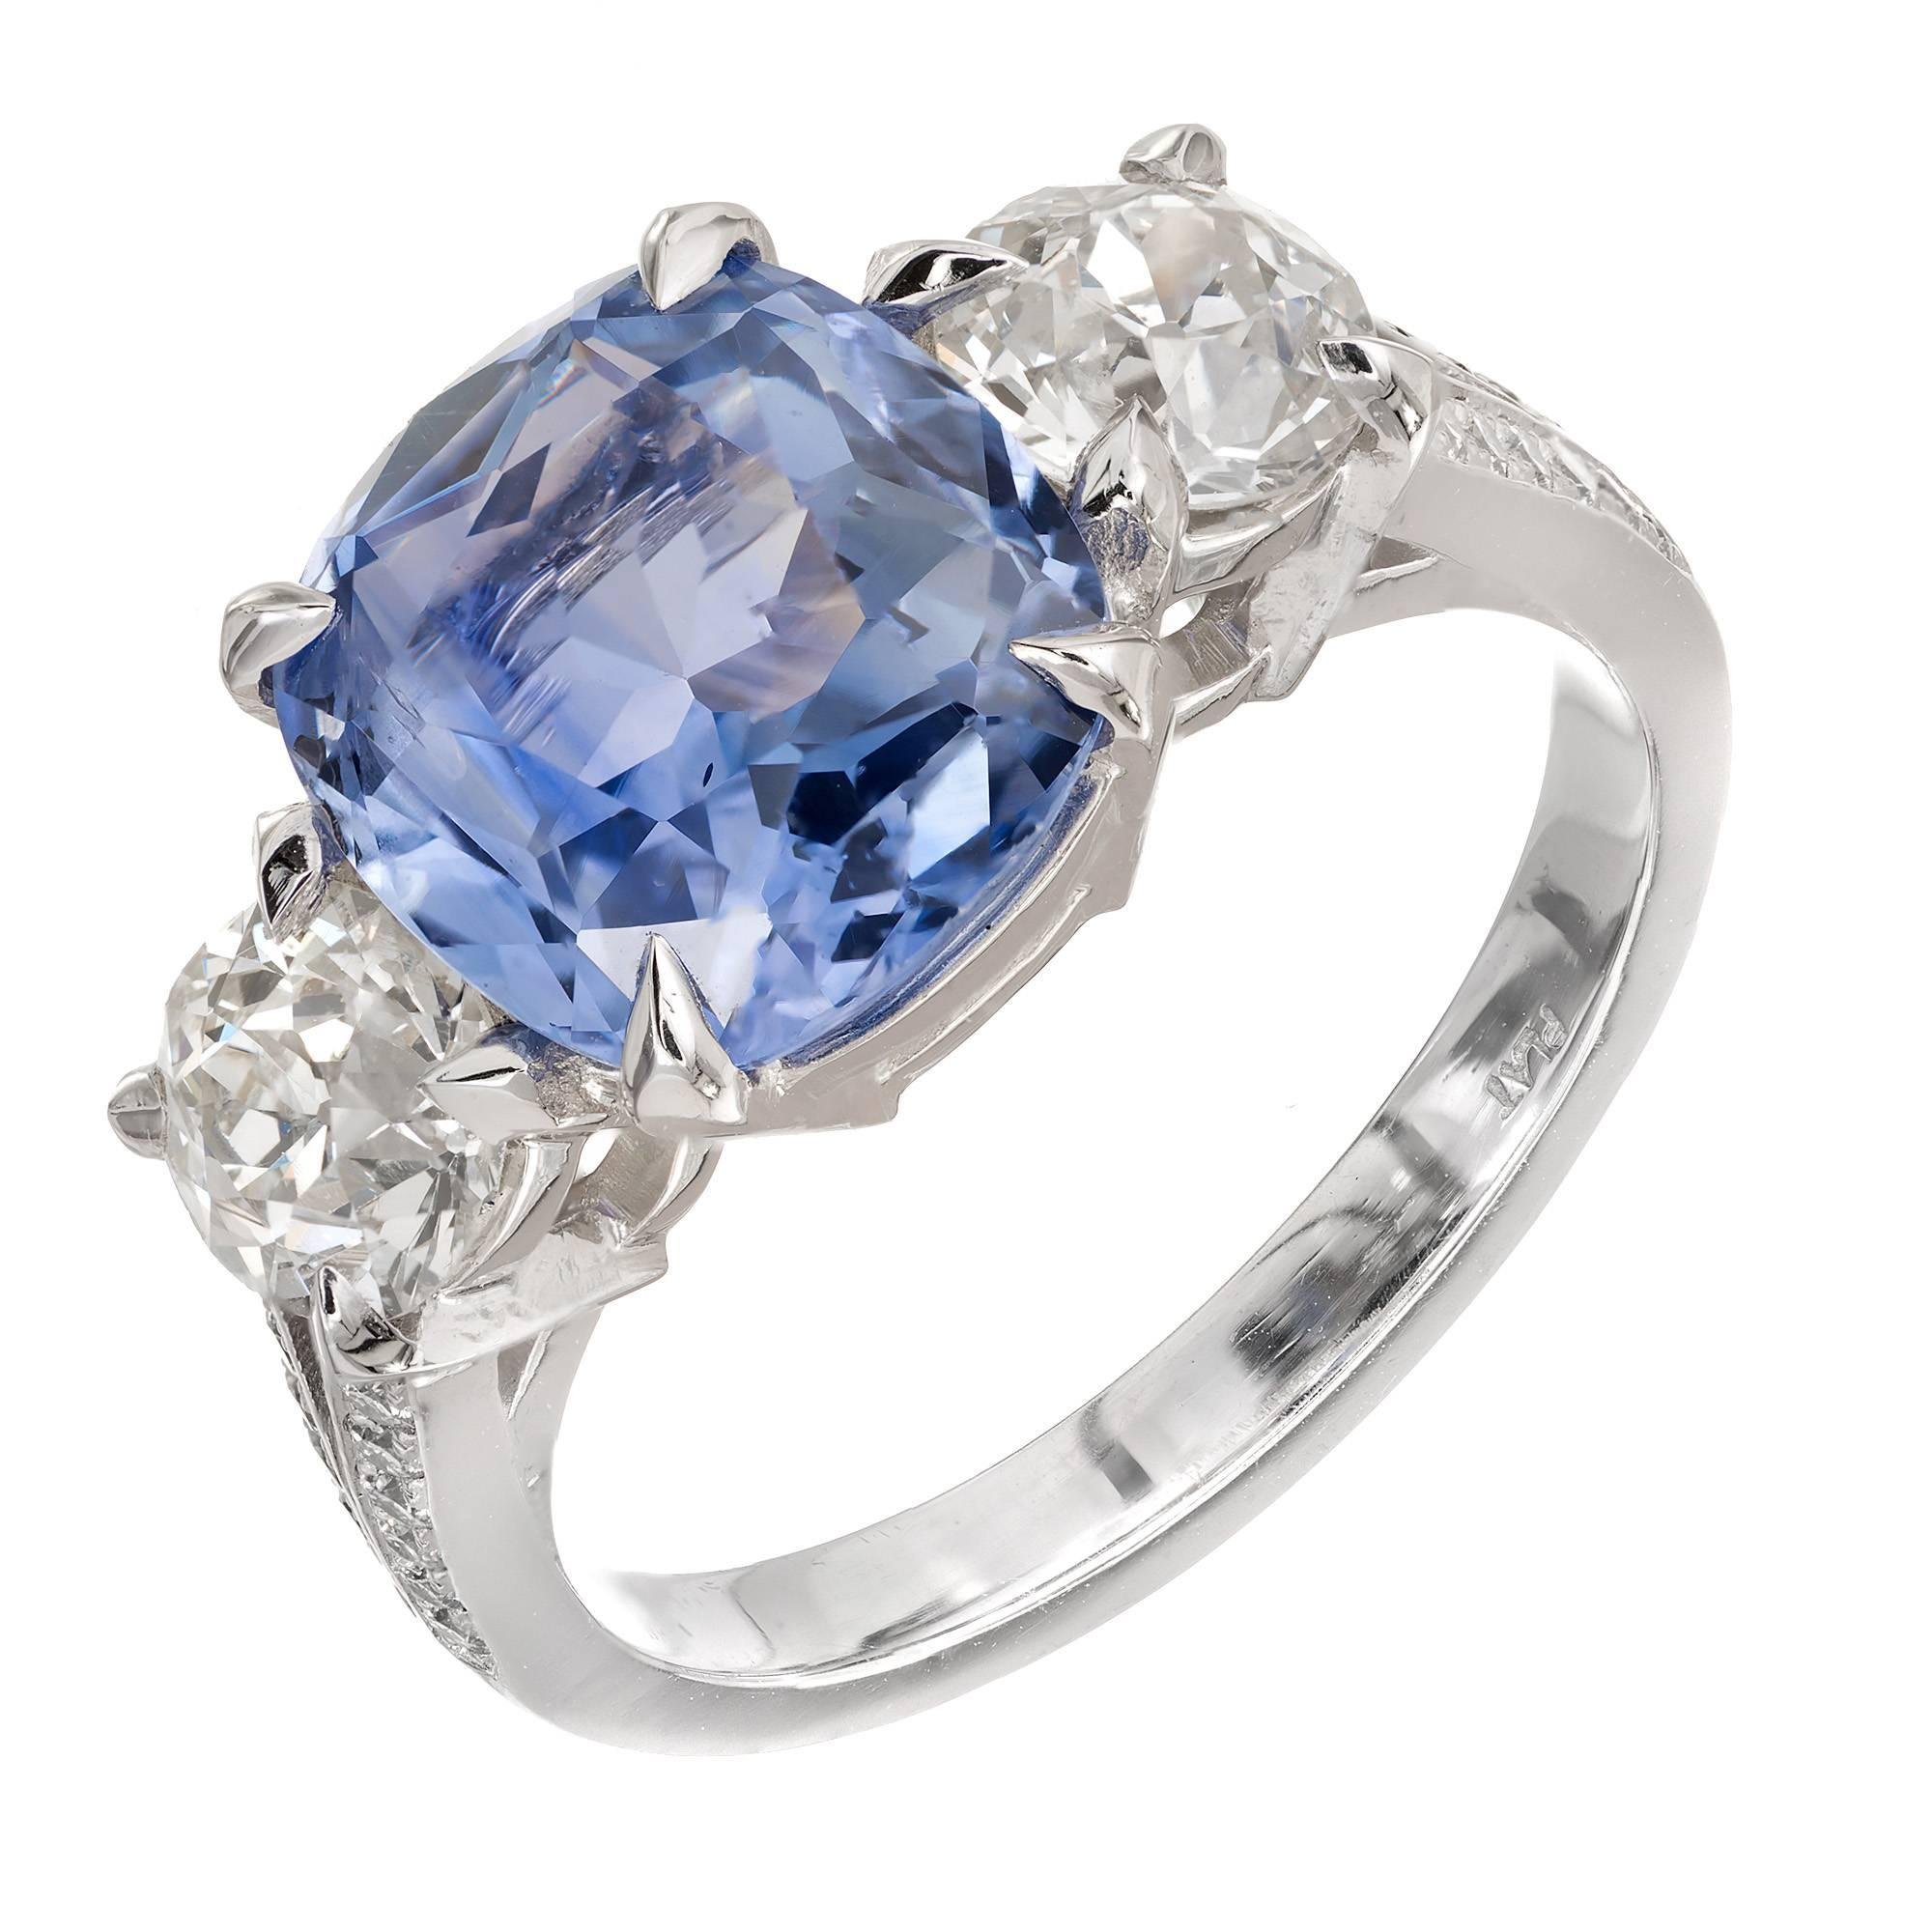 GIA Certified Peter Suchy 4.34 Carat Cushion Sapphire Platinum Engagement Ring